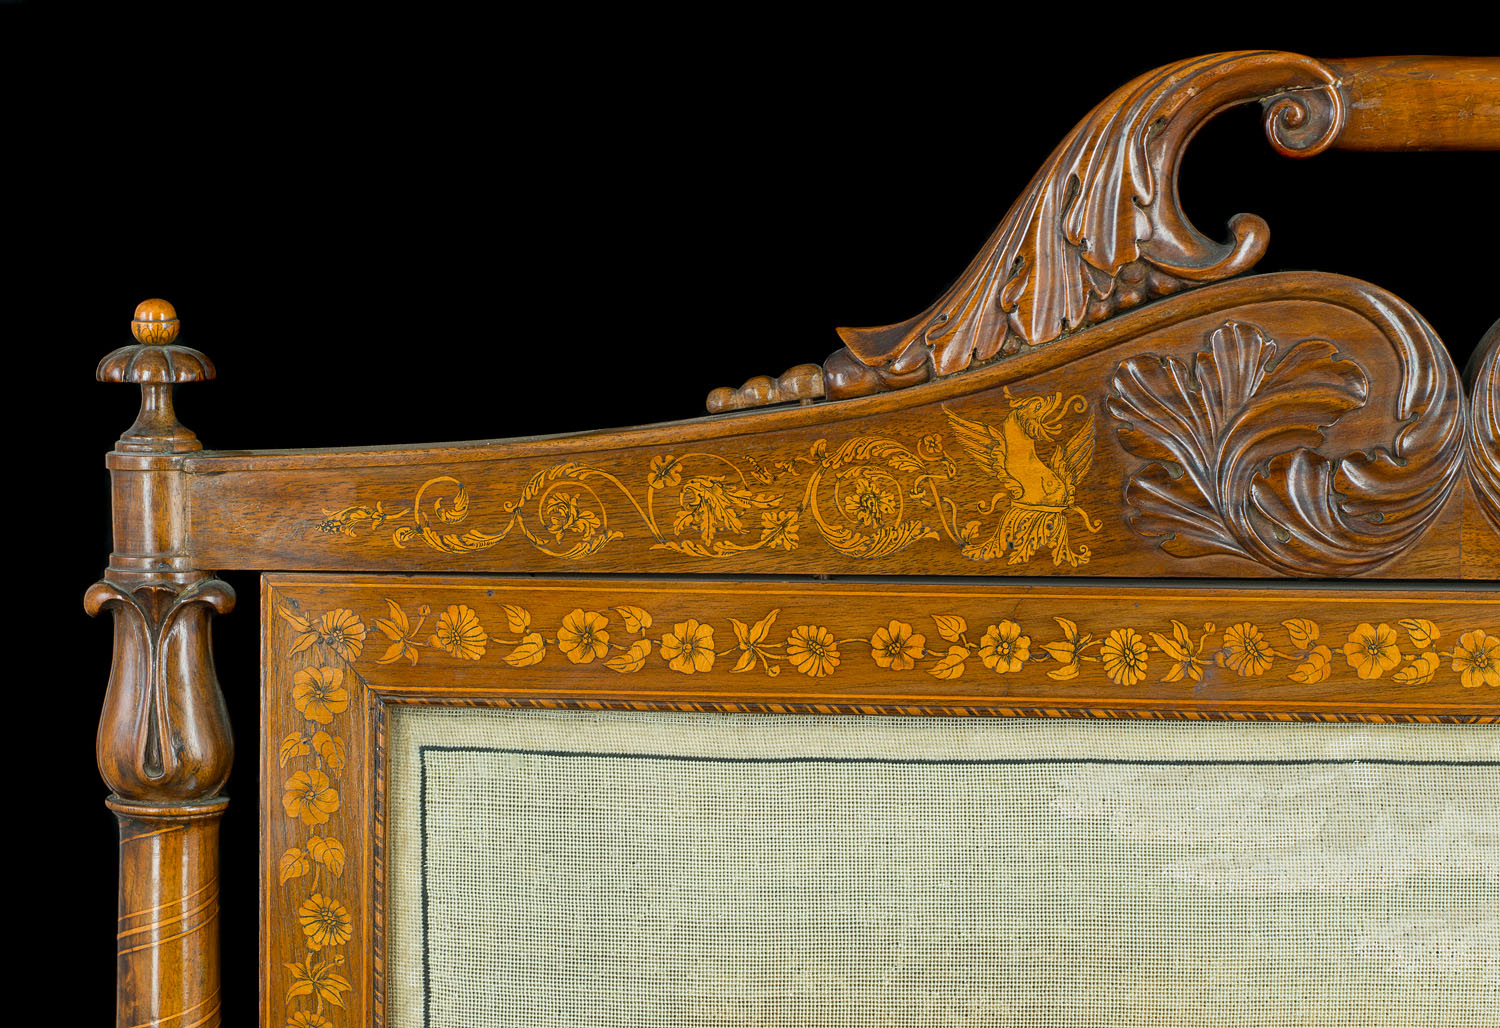 Regency Sheraton Revival inlaid rosewood Fire Screen